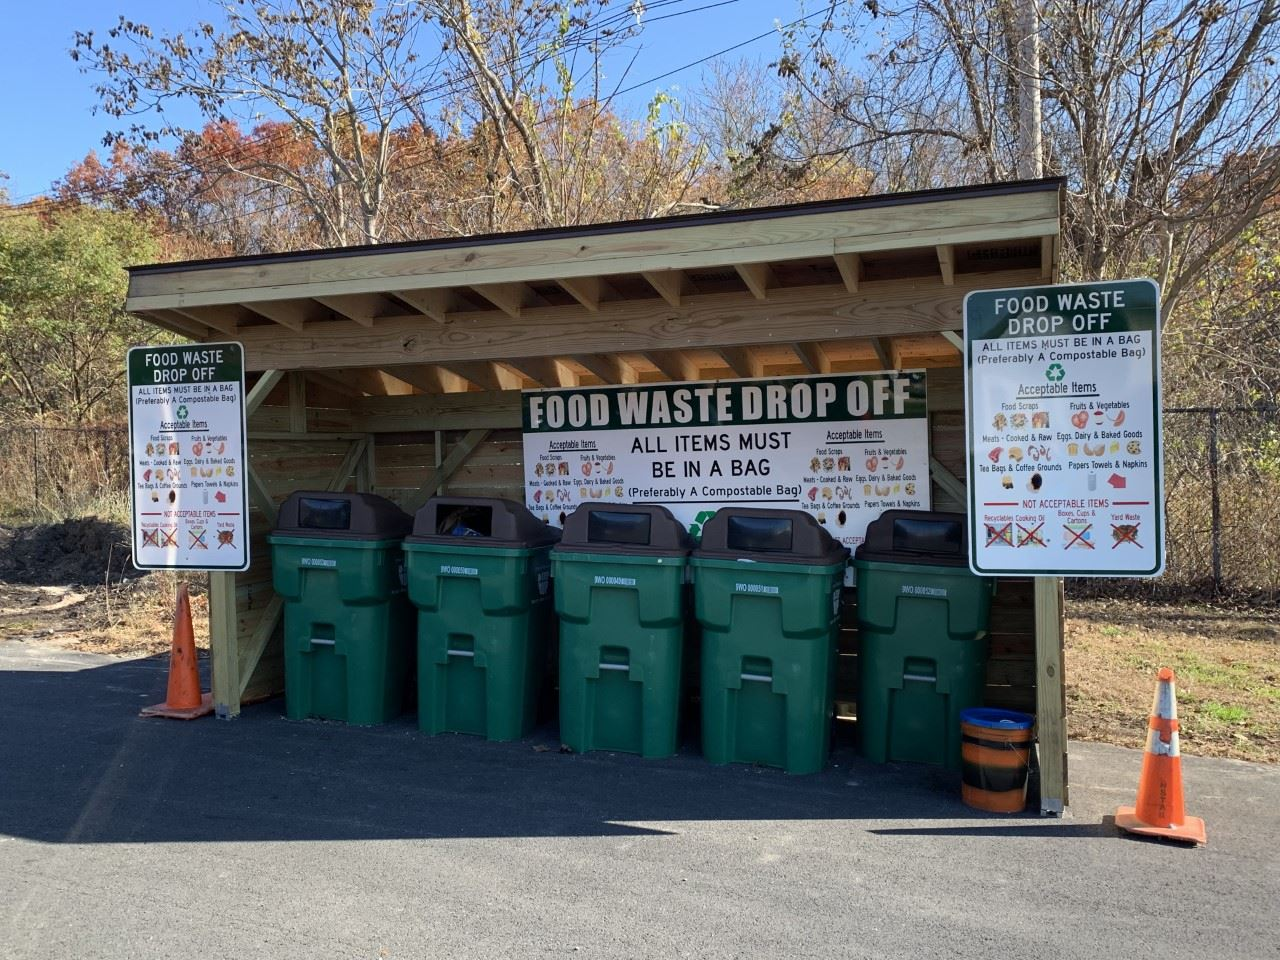 Transfer Station Recycling bins in a row